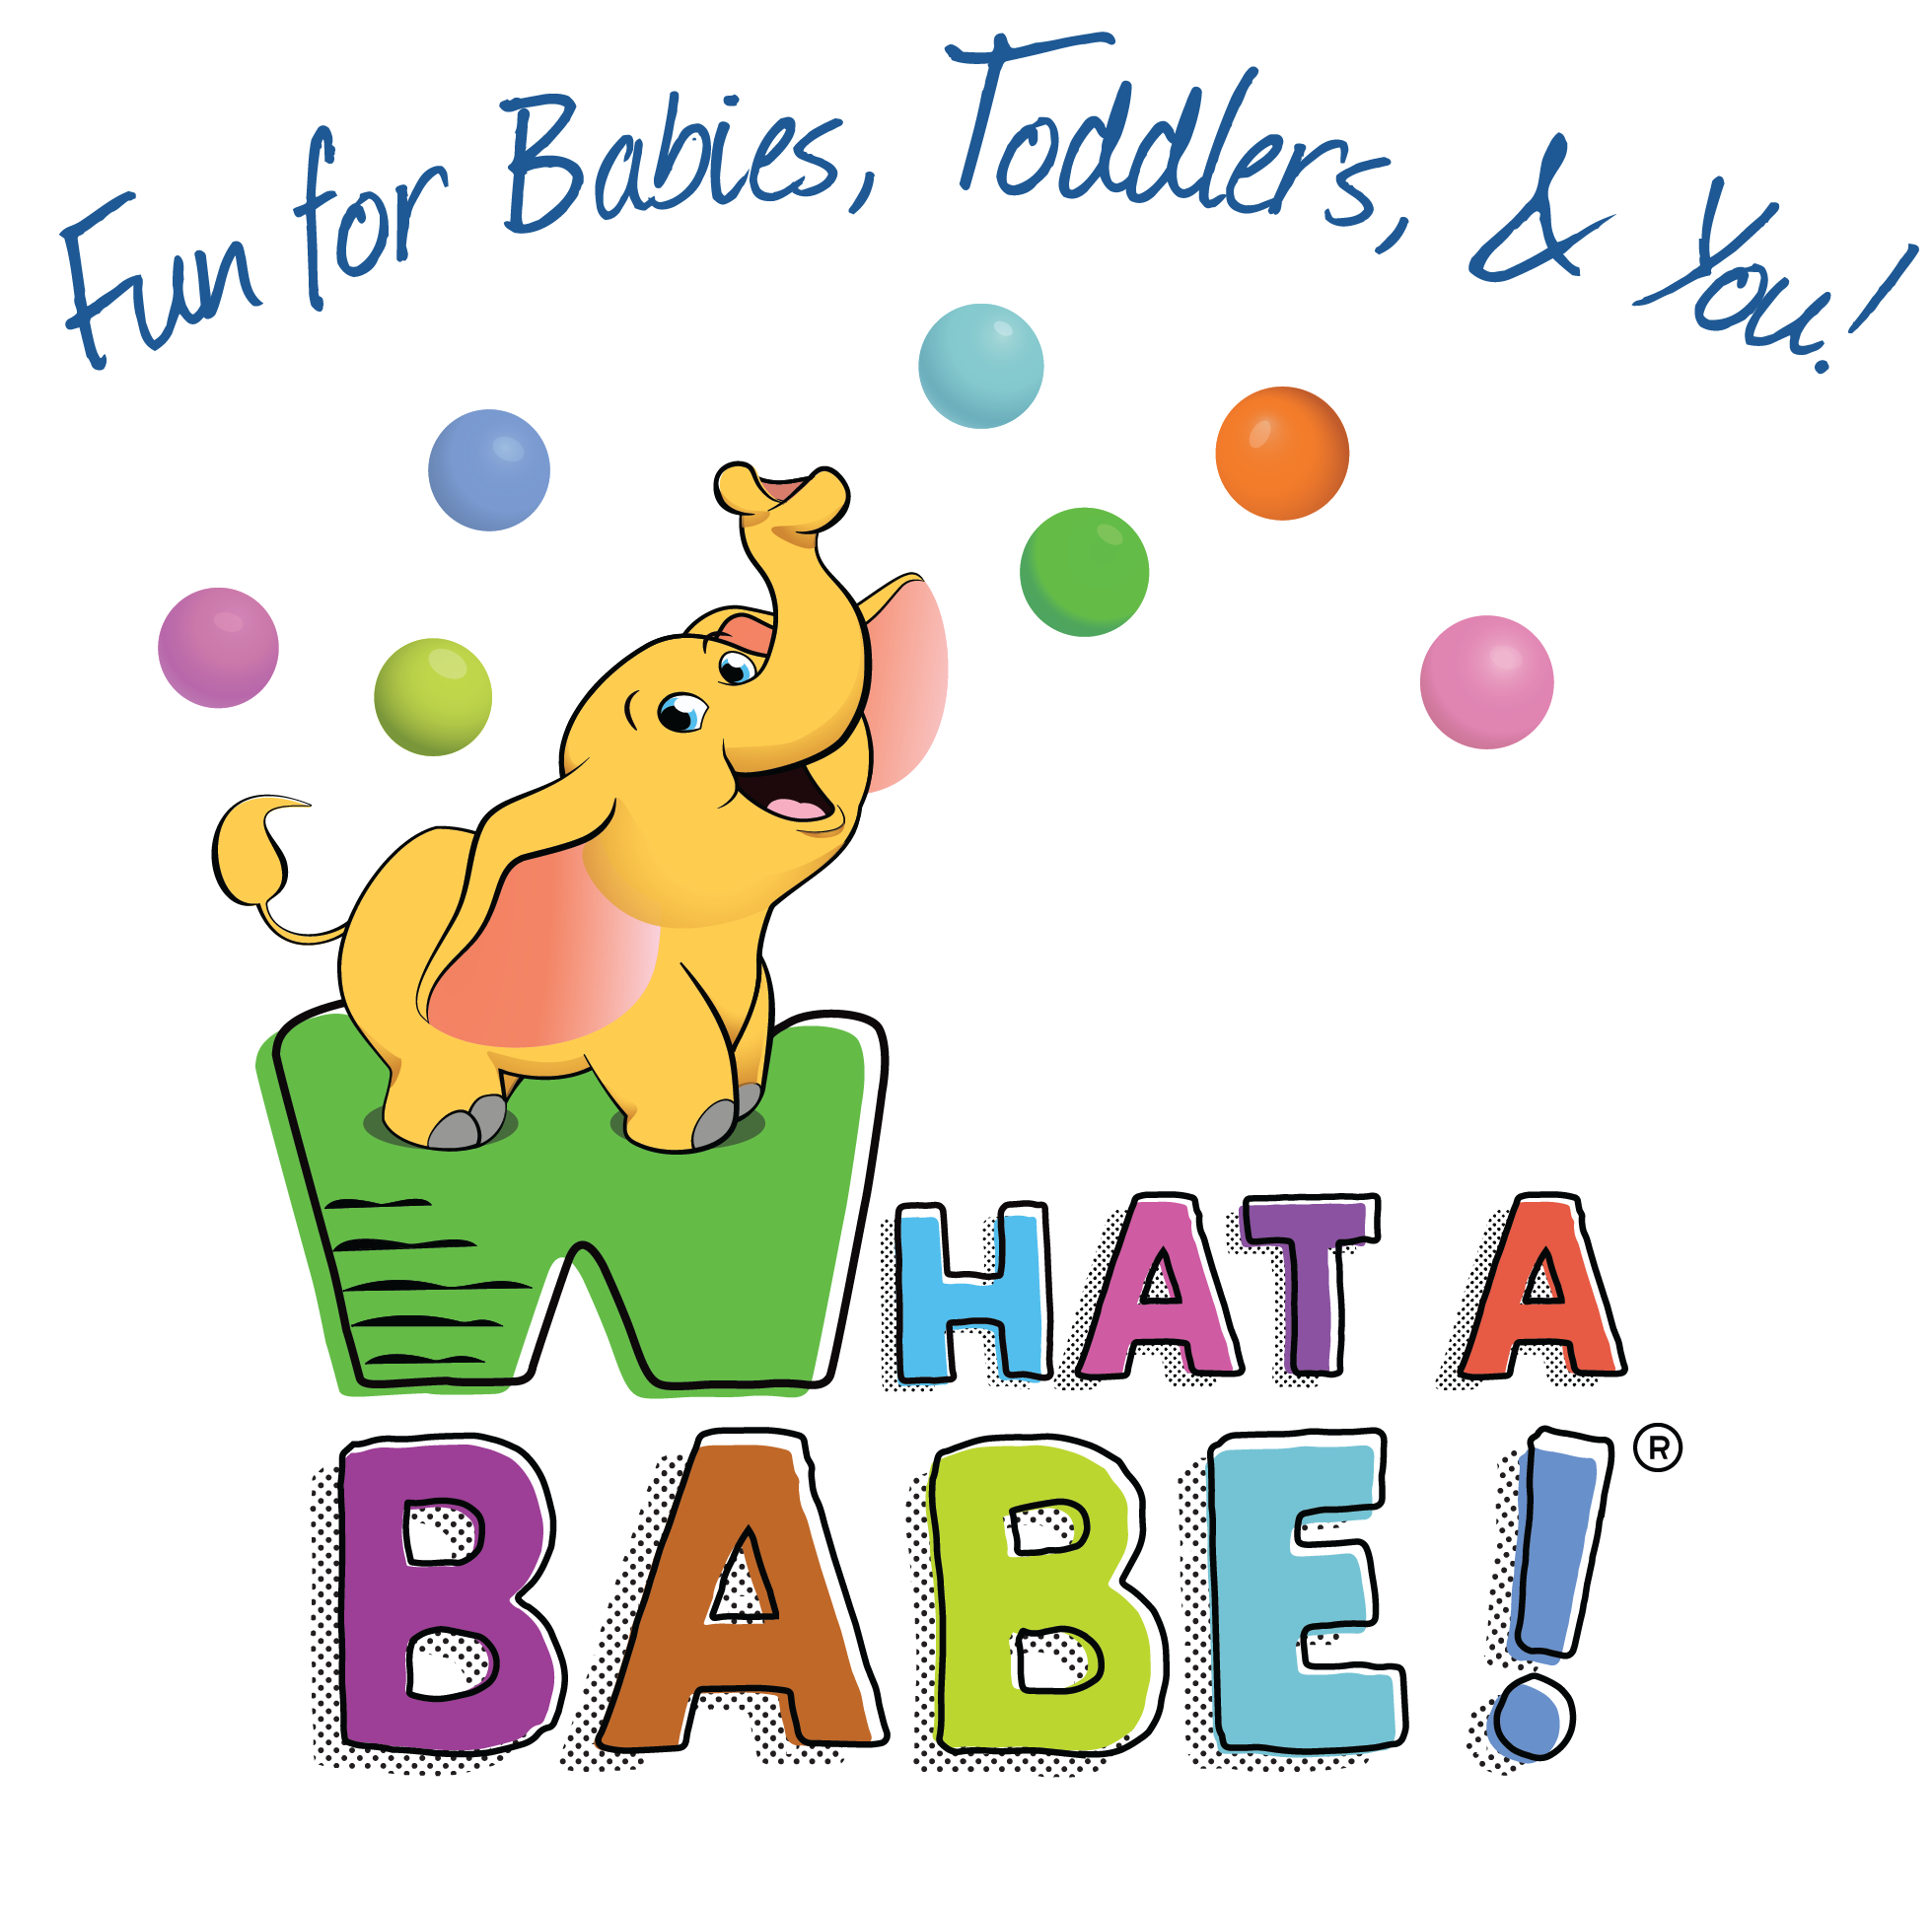 What a Babe! - Fun for Babies, Toddlers & You